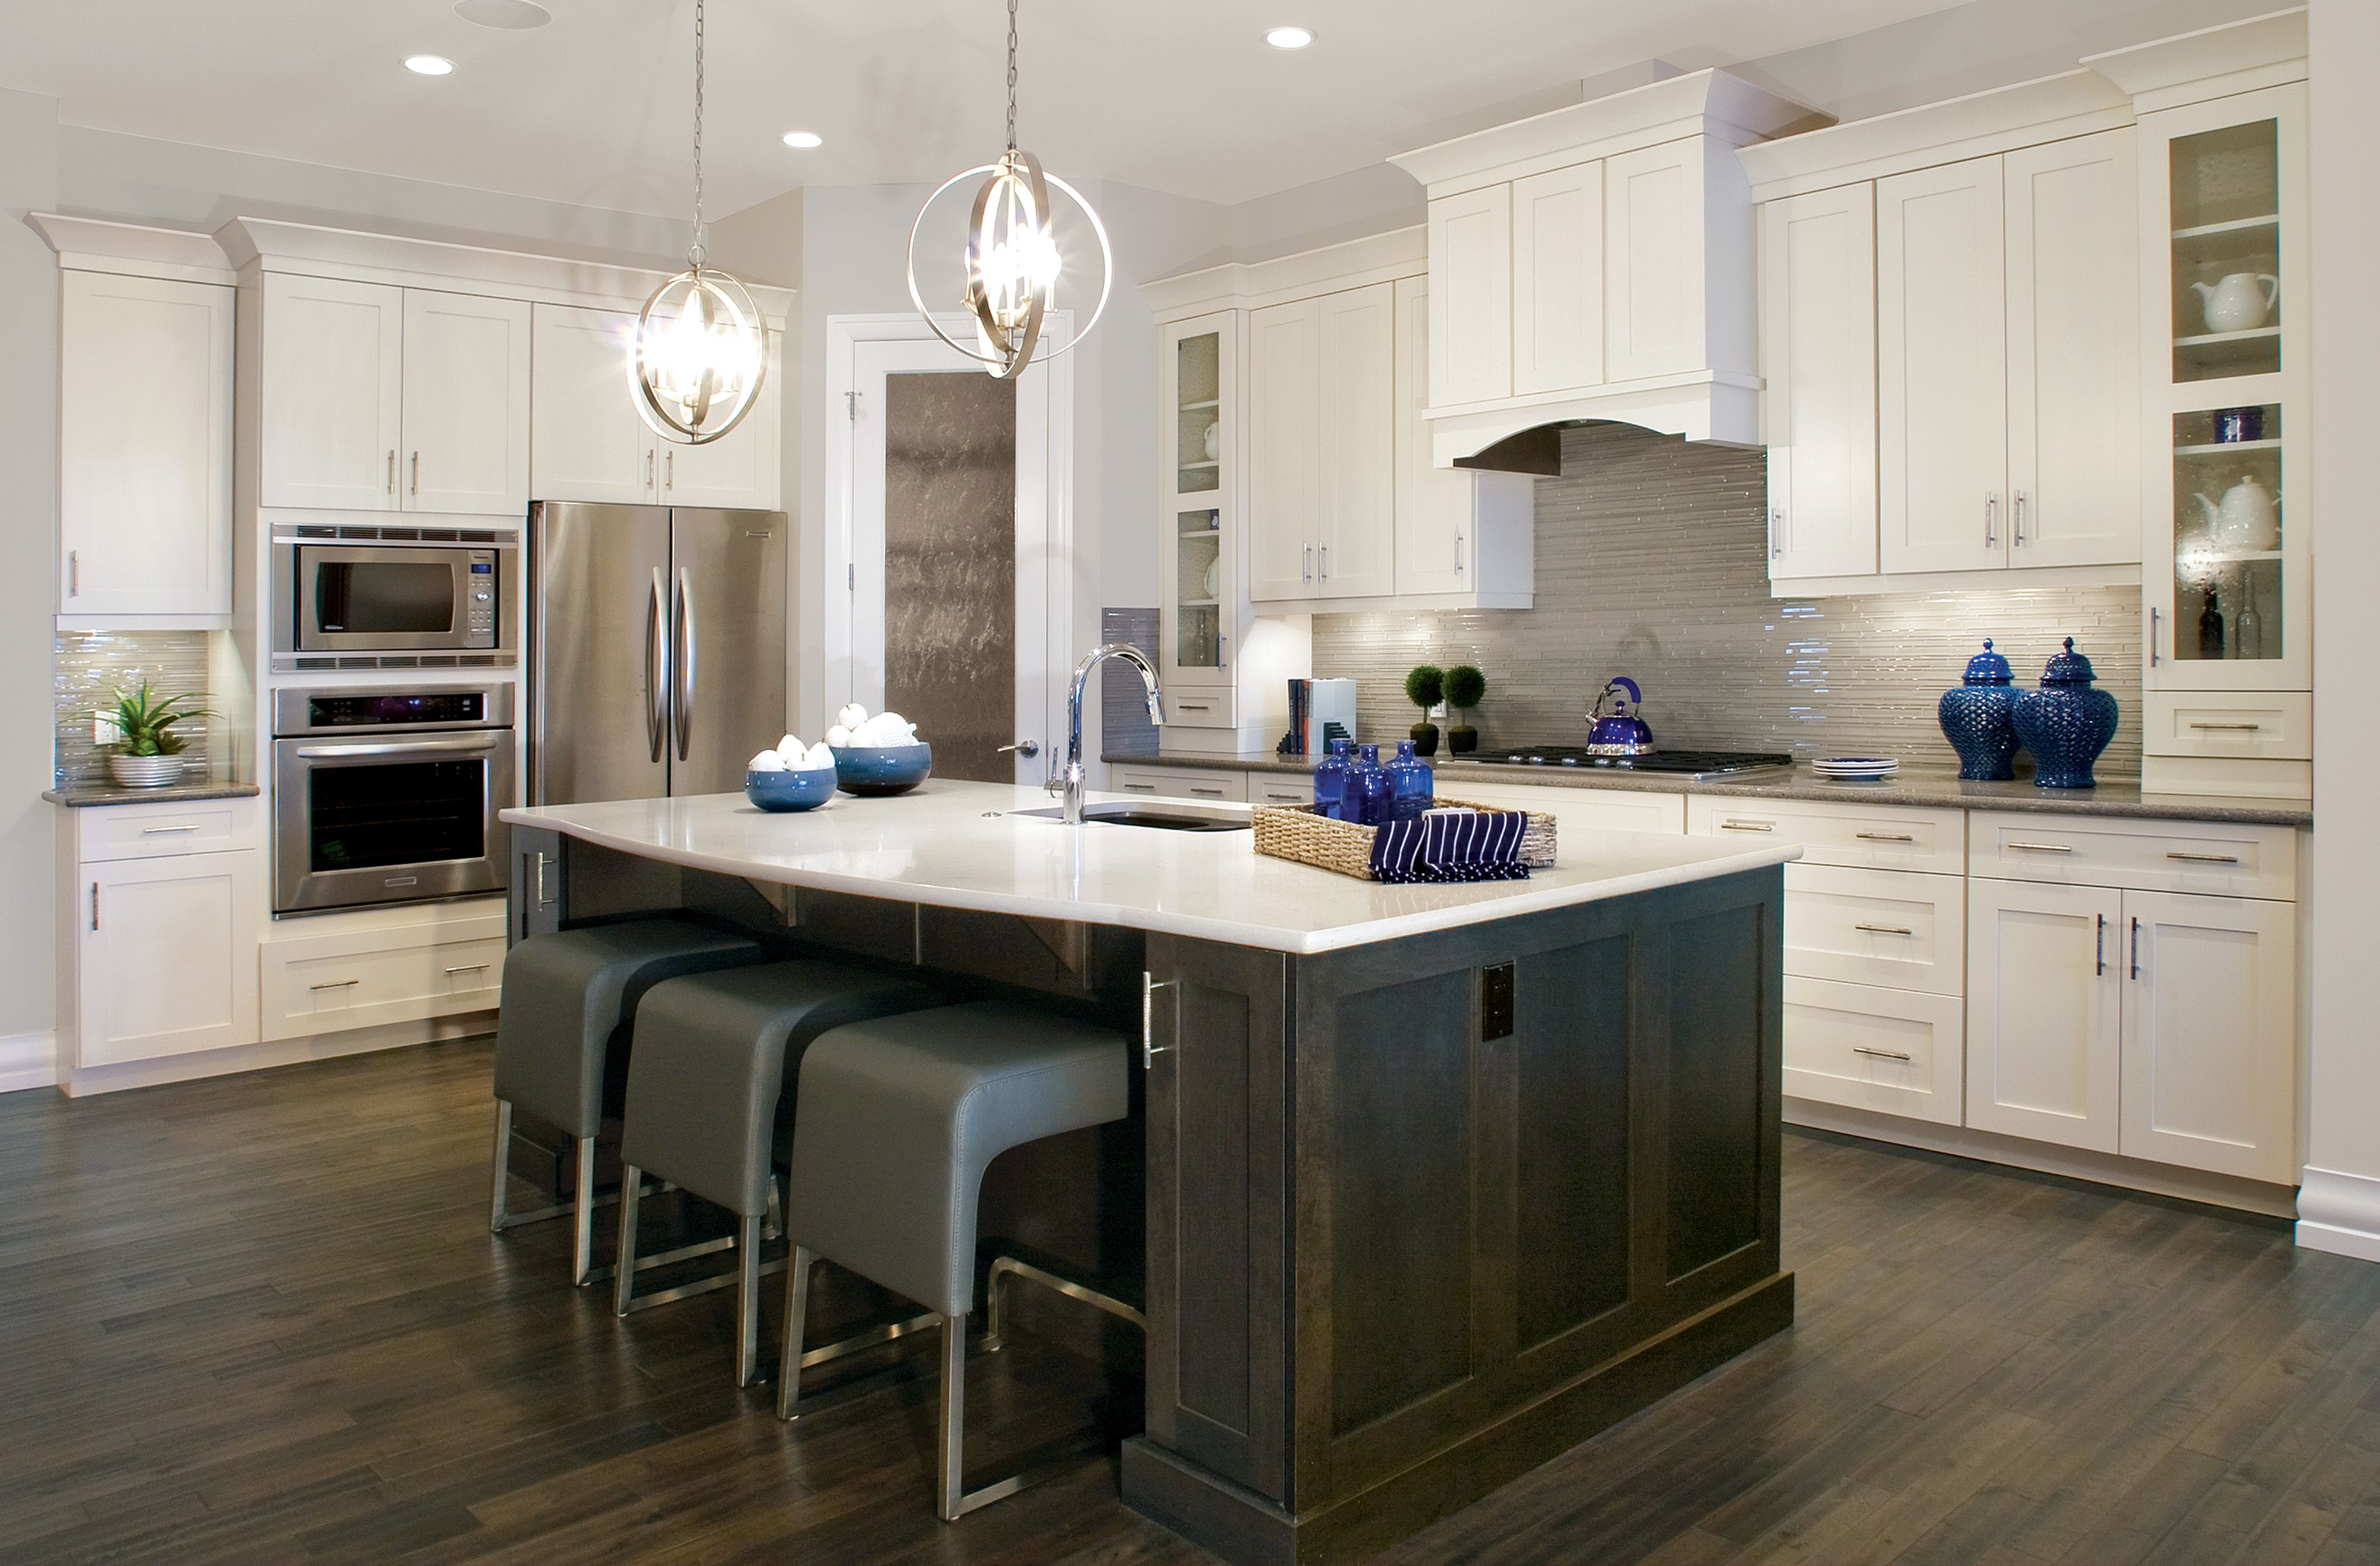 Kitchen cabinets for less nj - Huntwood Kitchen For Calbridge Homes In Alberta